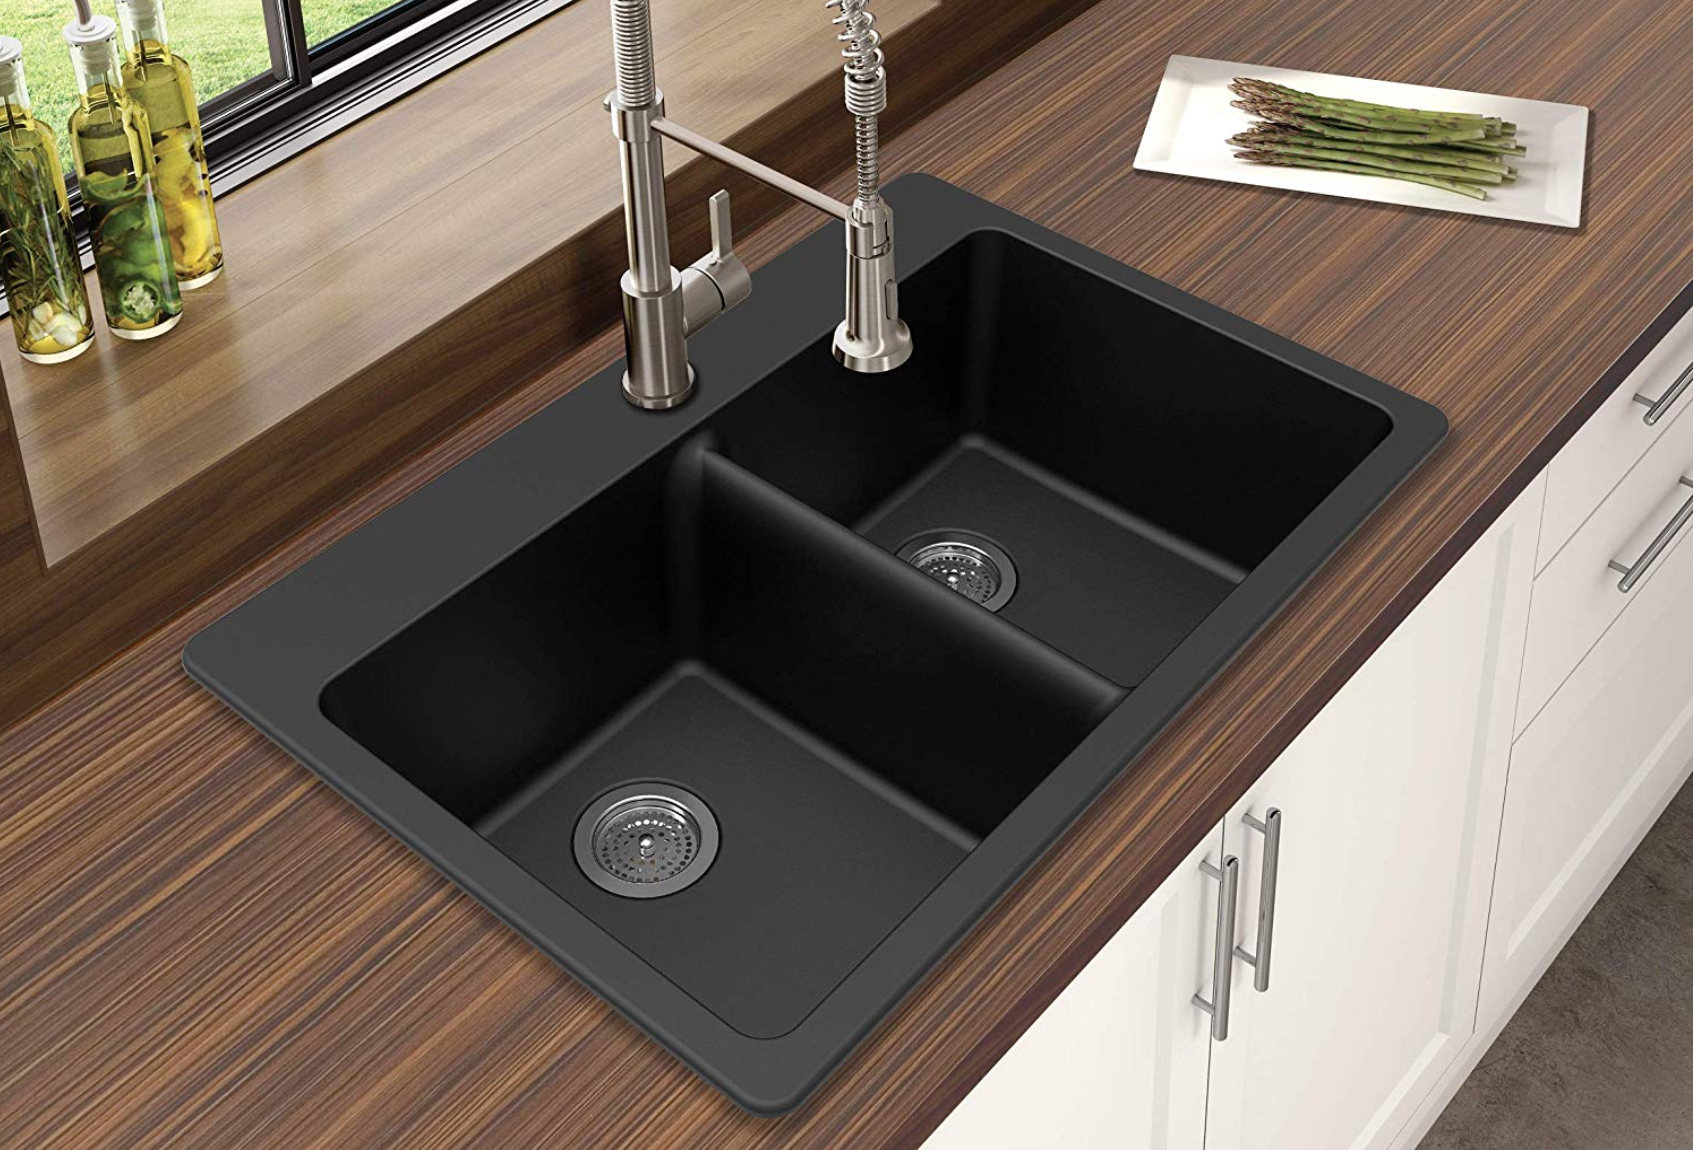 Dual Mount Sink in Black Granite Quartz